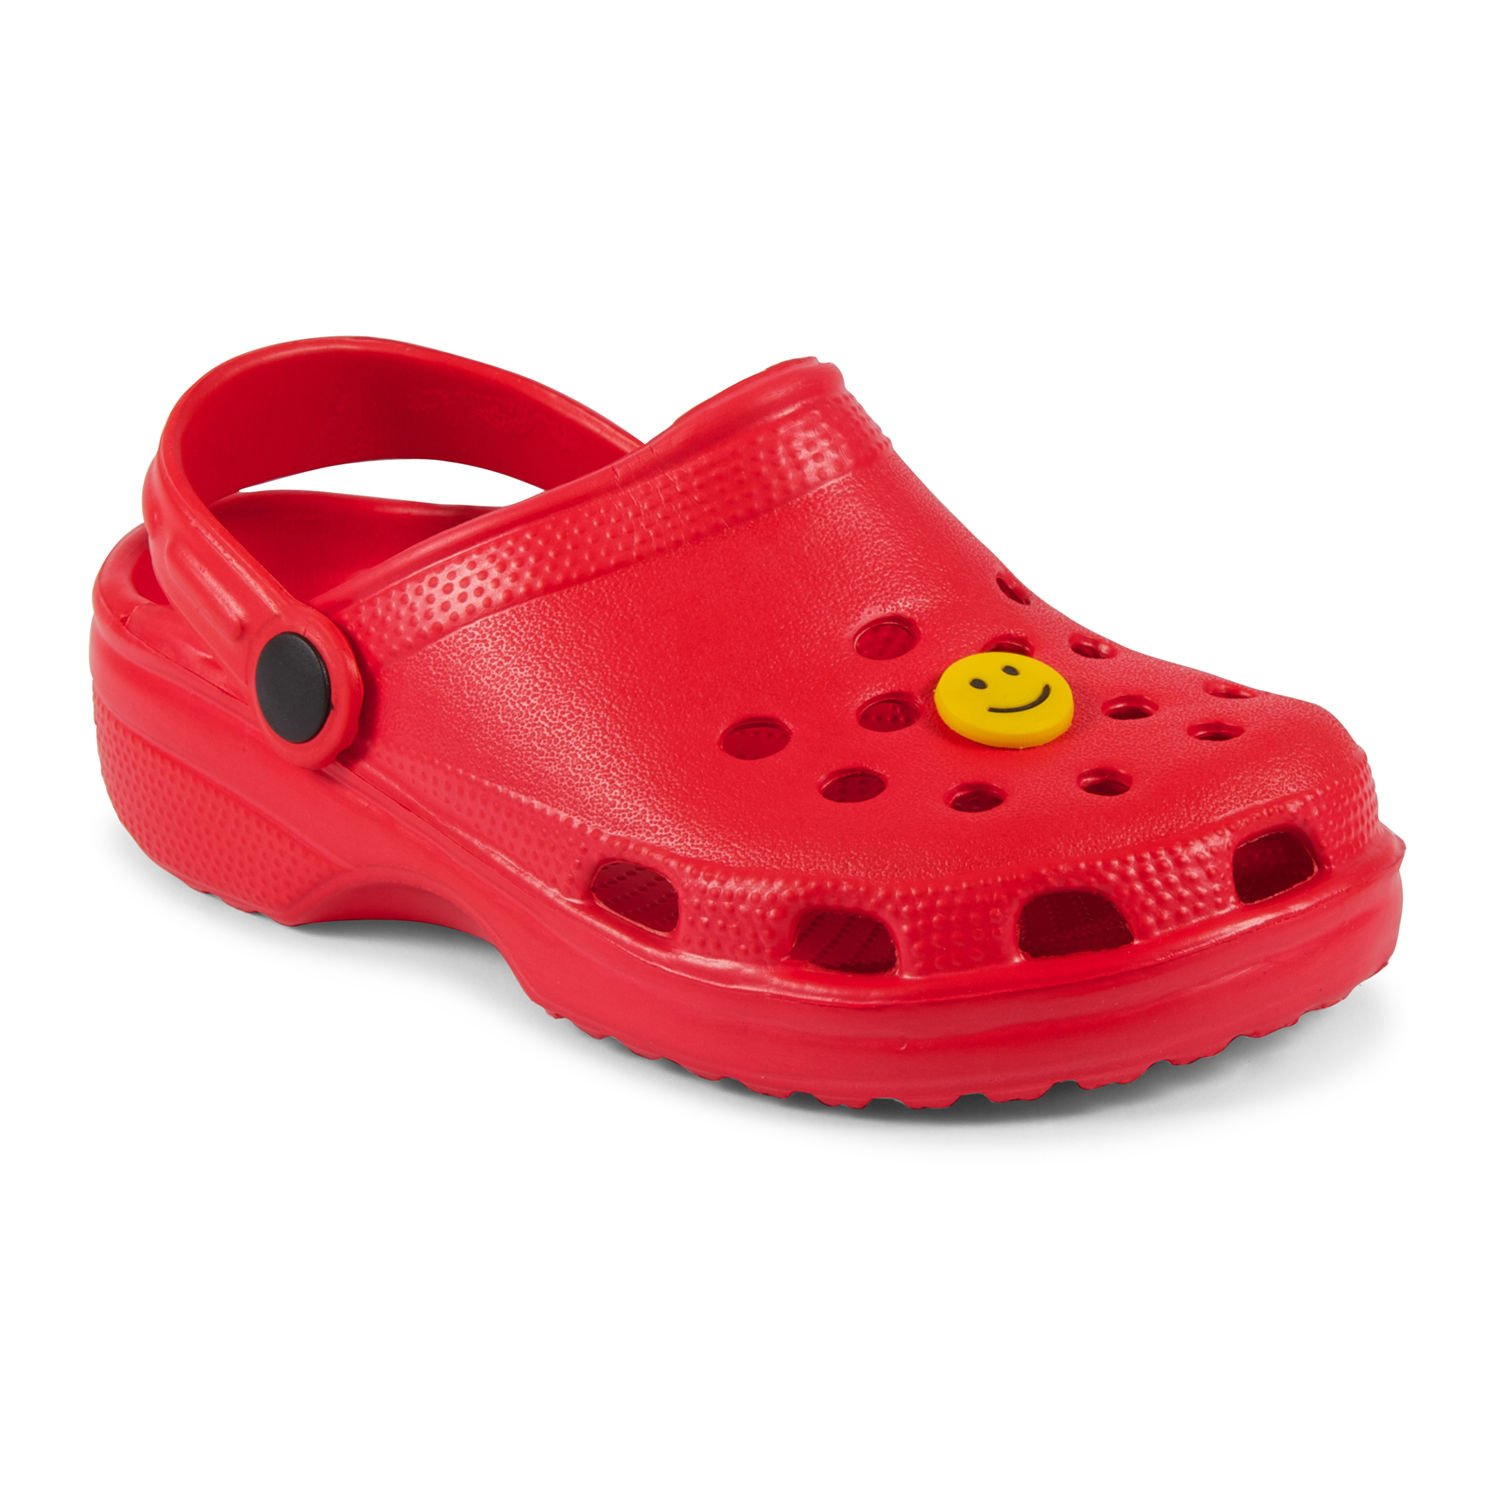 cloggis Kids Beach Clogs, Childrens Summer Sandals, Water Shoes Jellys